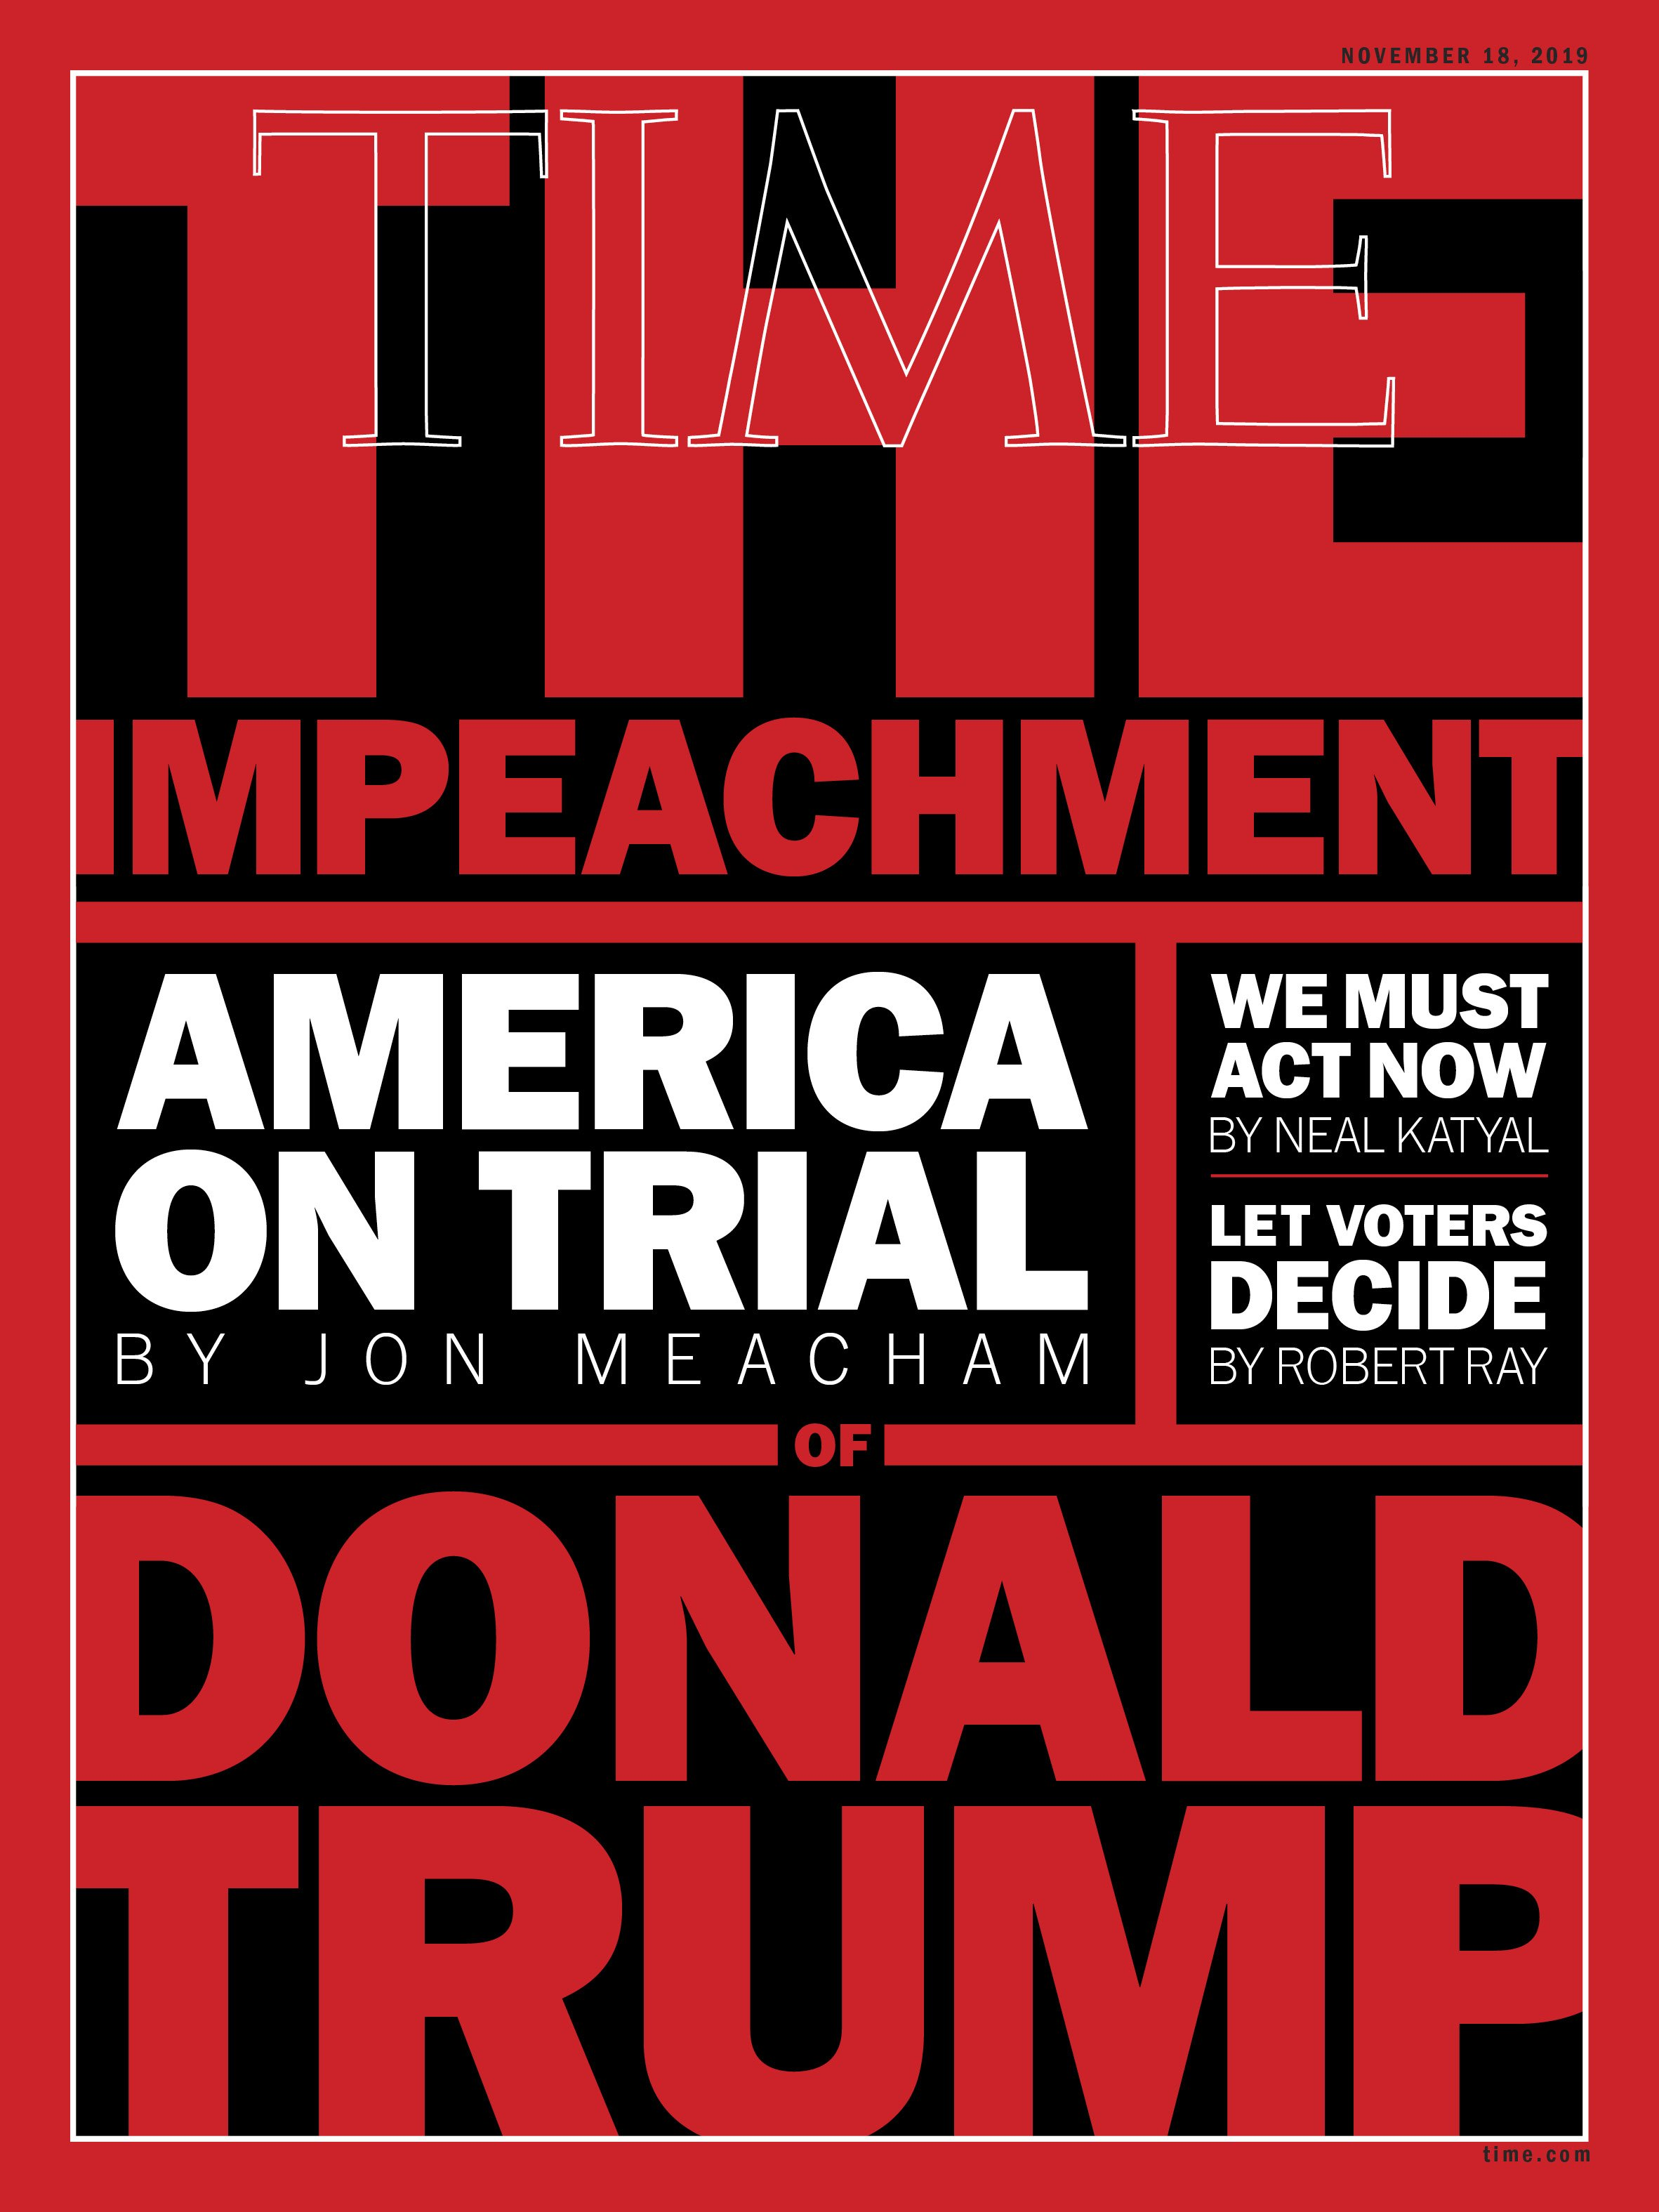 How to Watch the Impeachment: The People's Role